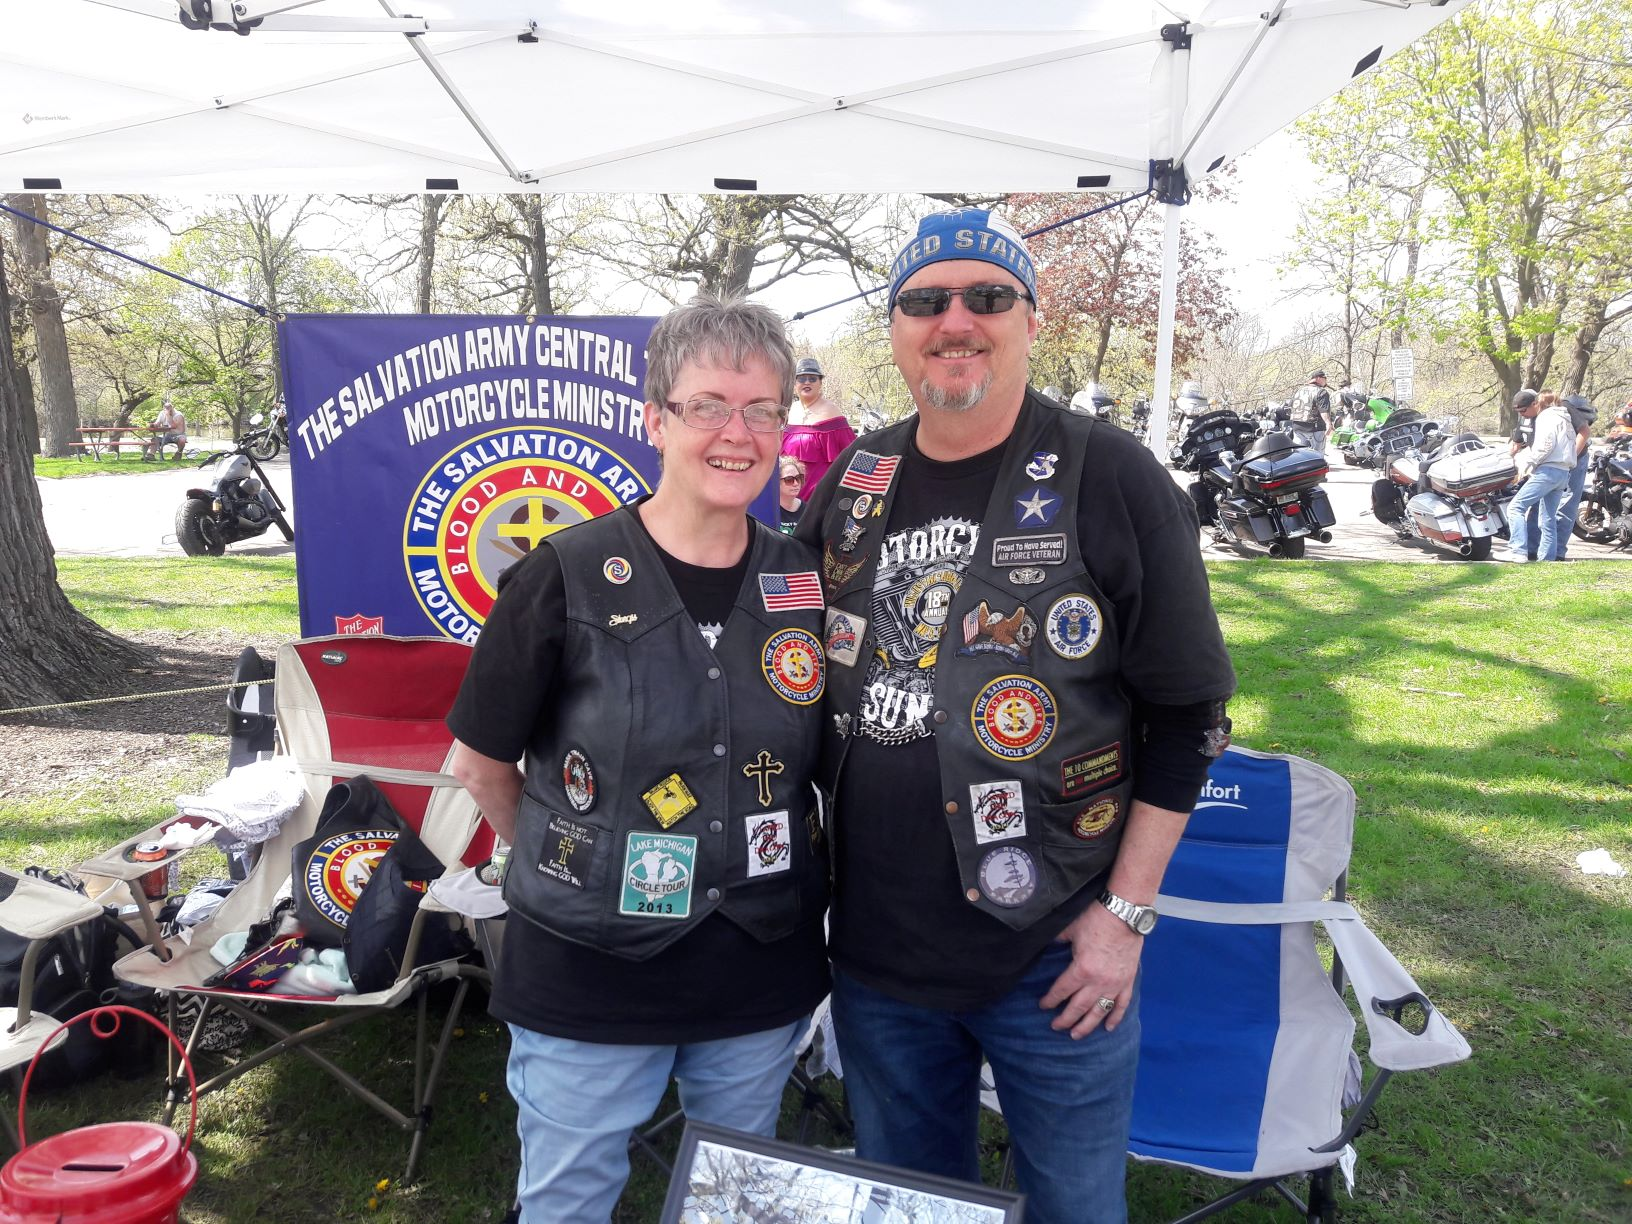 Motorcycle Sunday 2019 with Salvation Army.